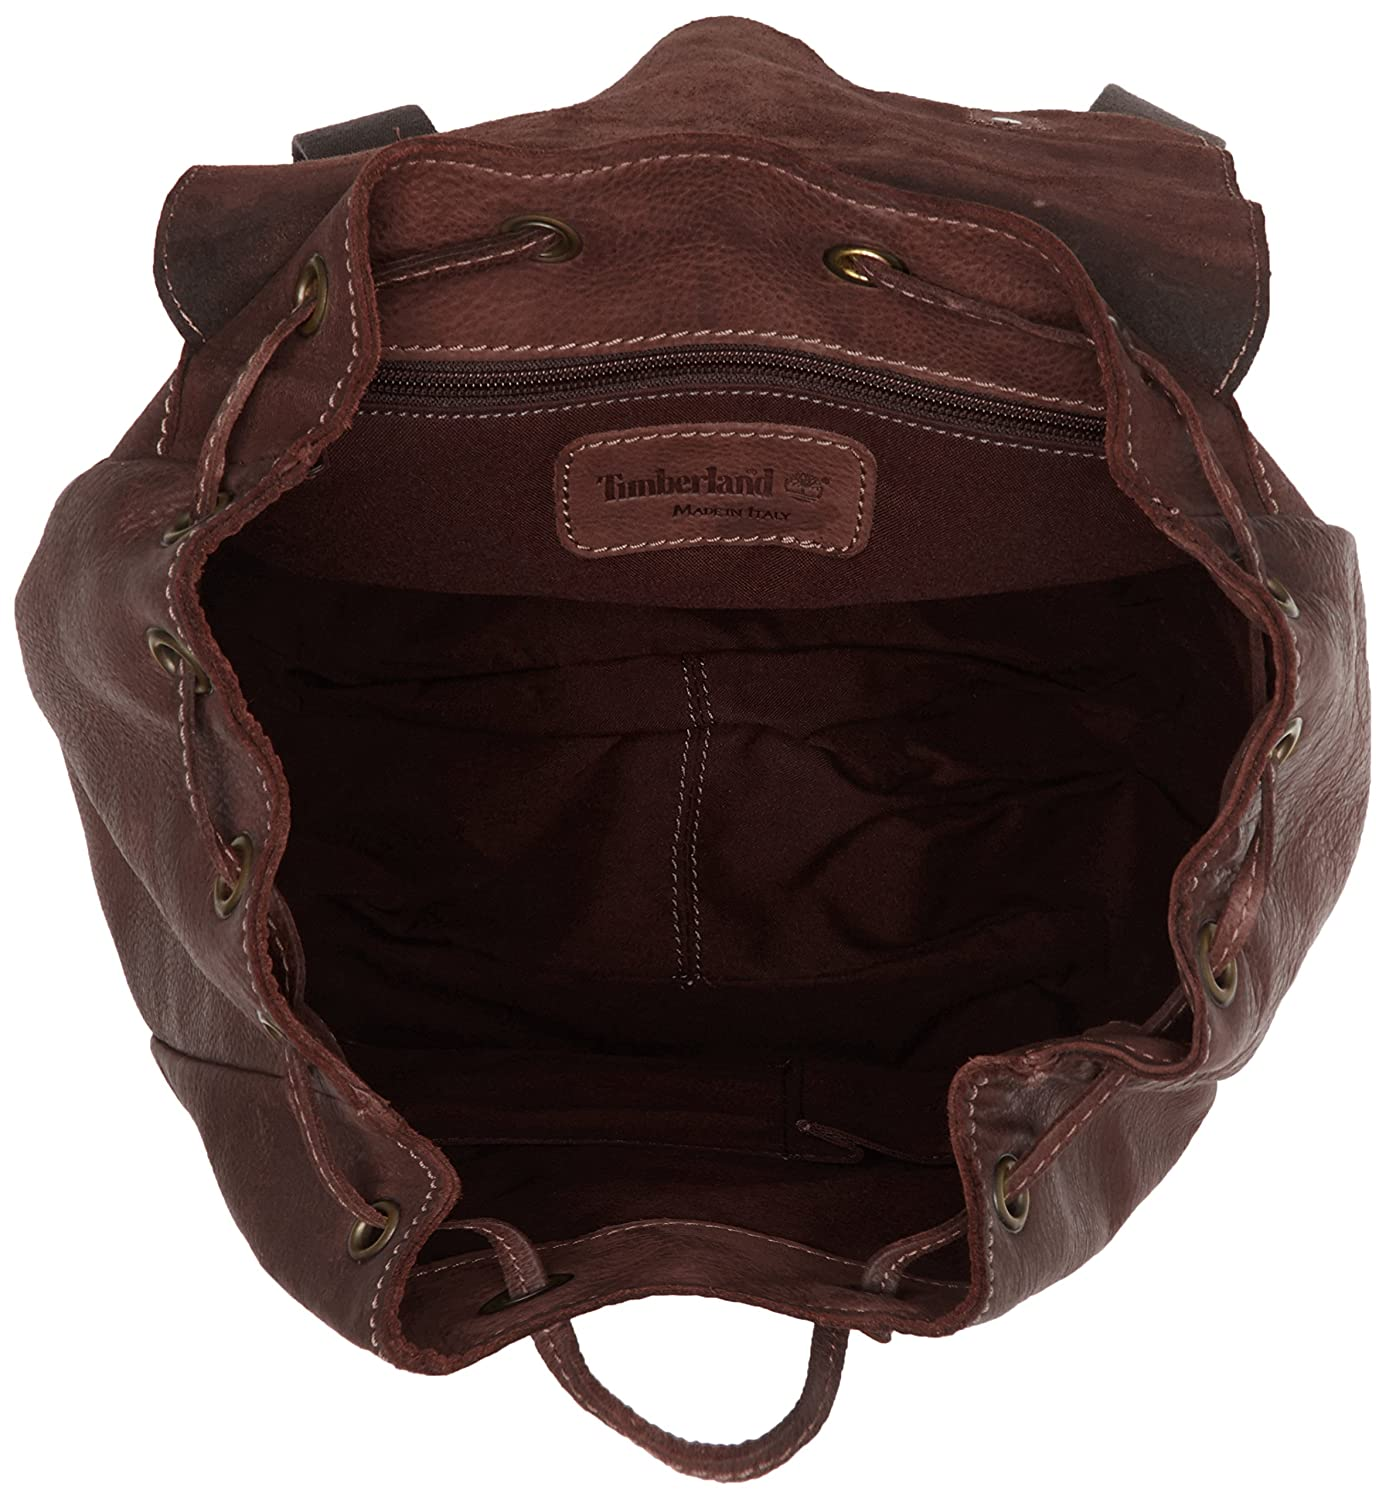 be18c29a387 Timberland Mens TB0M5050Children's Backpack Brown Brown (Black Coffee 544):  Amazon.co.uk: Shoes & Bags